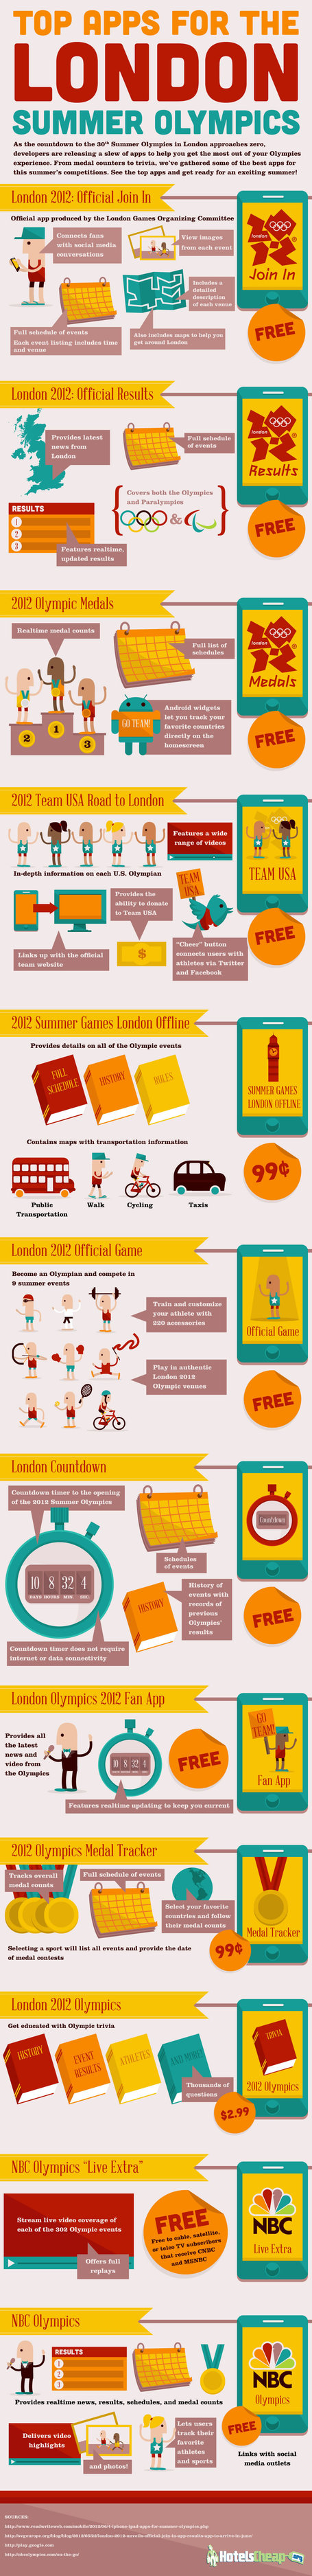 Top Best Apps for London Olympics 2012 Live Event Summer Complete Coverage | All Infographics | Mobile Tools | Scoop.it